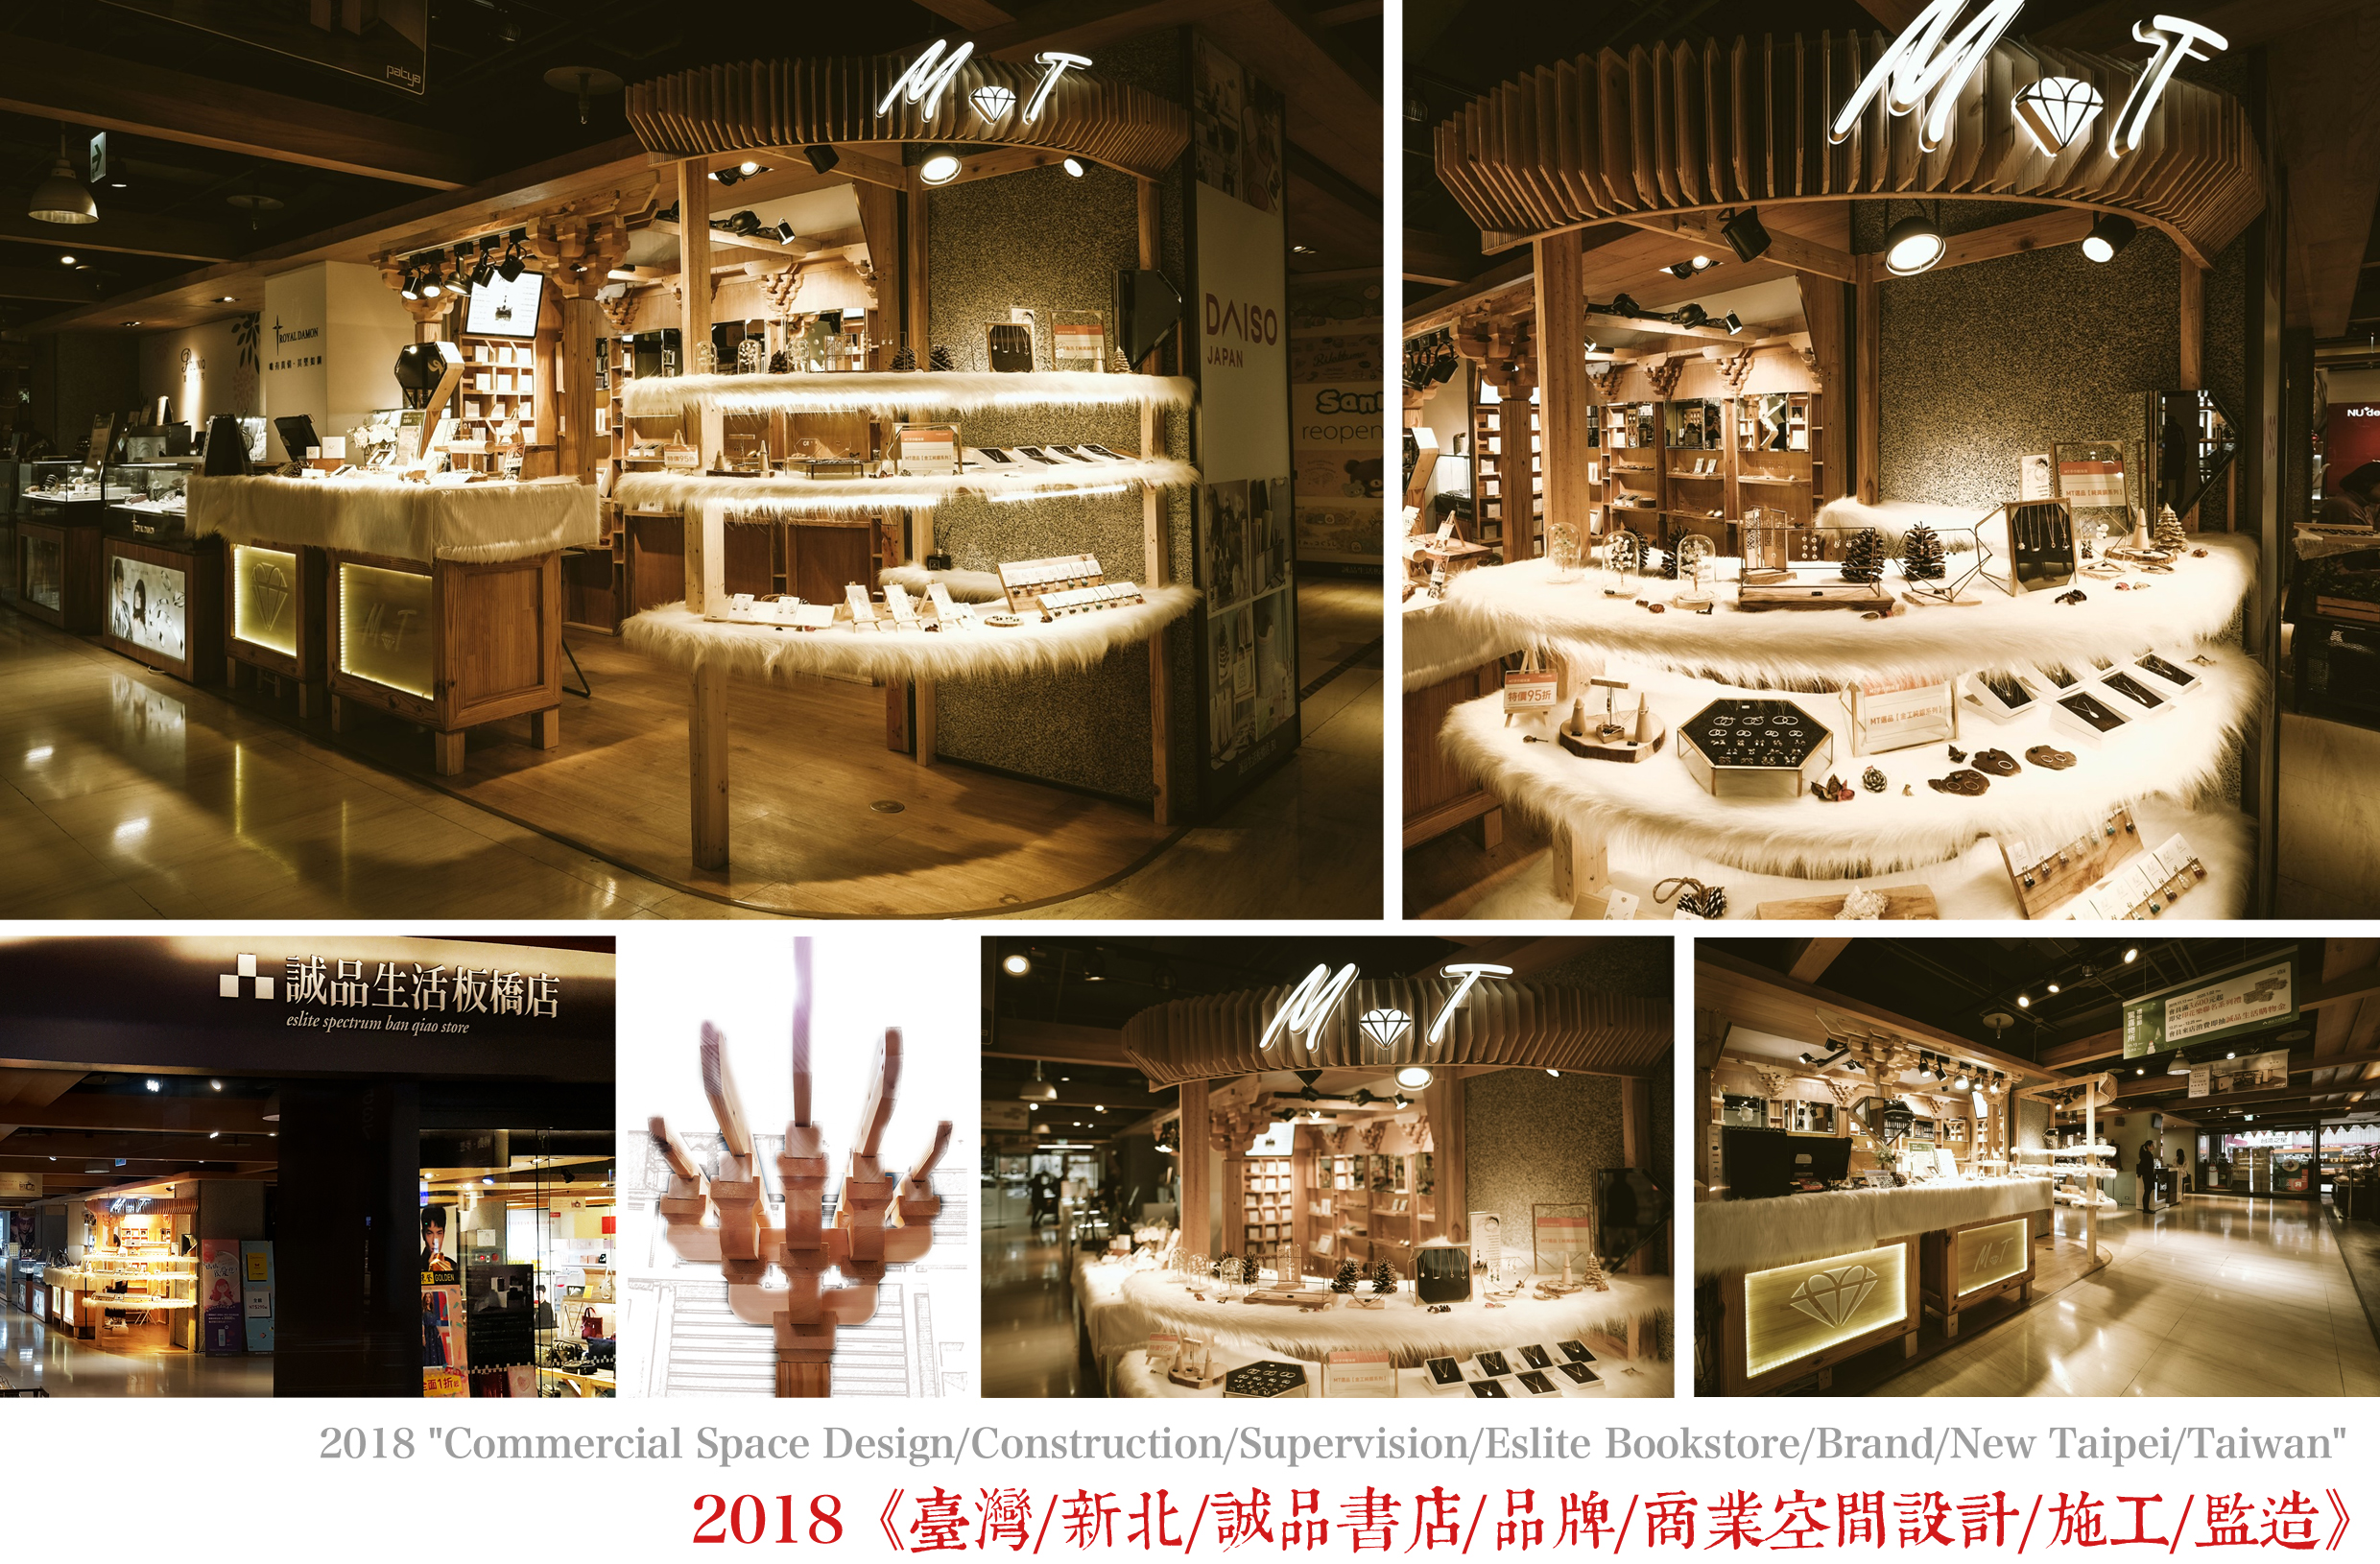 "2018 ""Commercial Space Design/Construction/Supervision/Eslite Bookstore/Brand/New Taipei/Taiwan""2018《臺灣/新北/誠品書店/品牌/商業空間設計/施工/監造》【Just Jump Culture all rights reserved子丑文創/版權所有】"